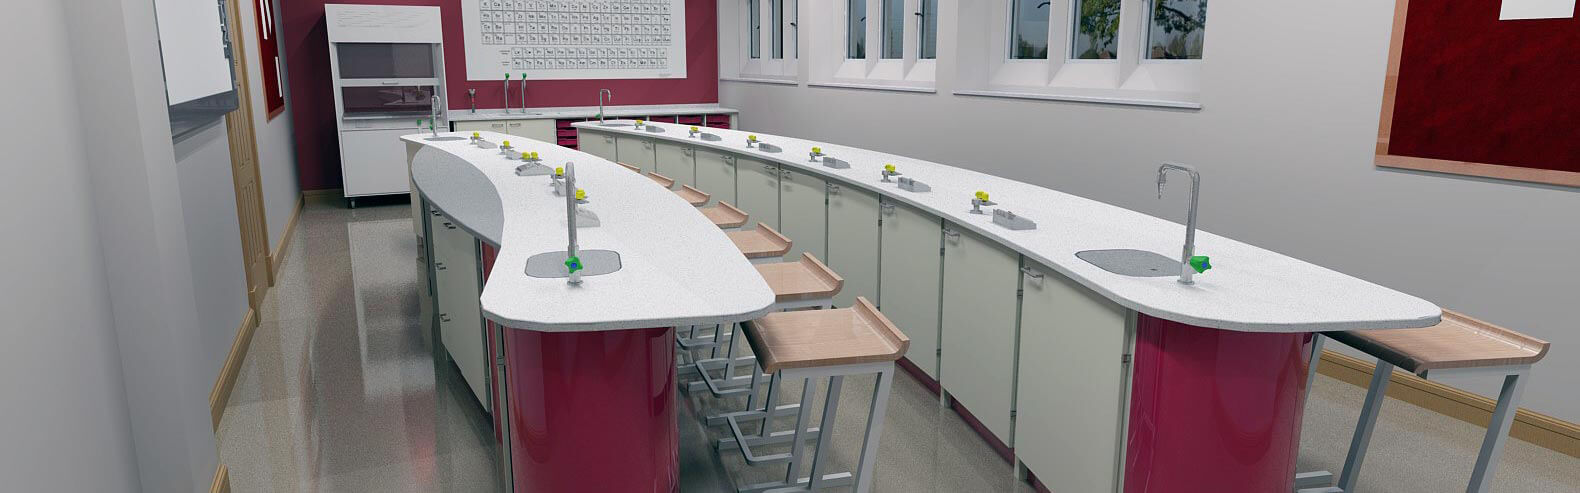 school science classroom lab furniture